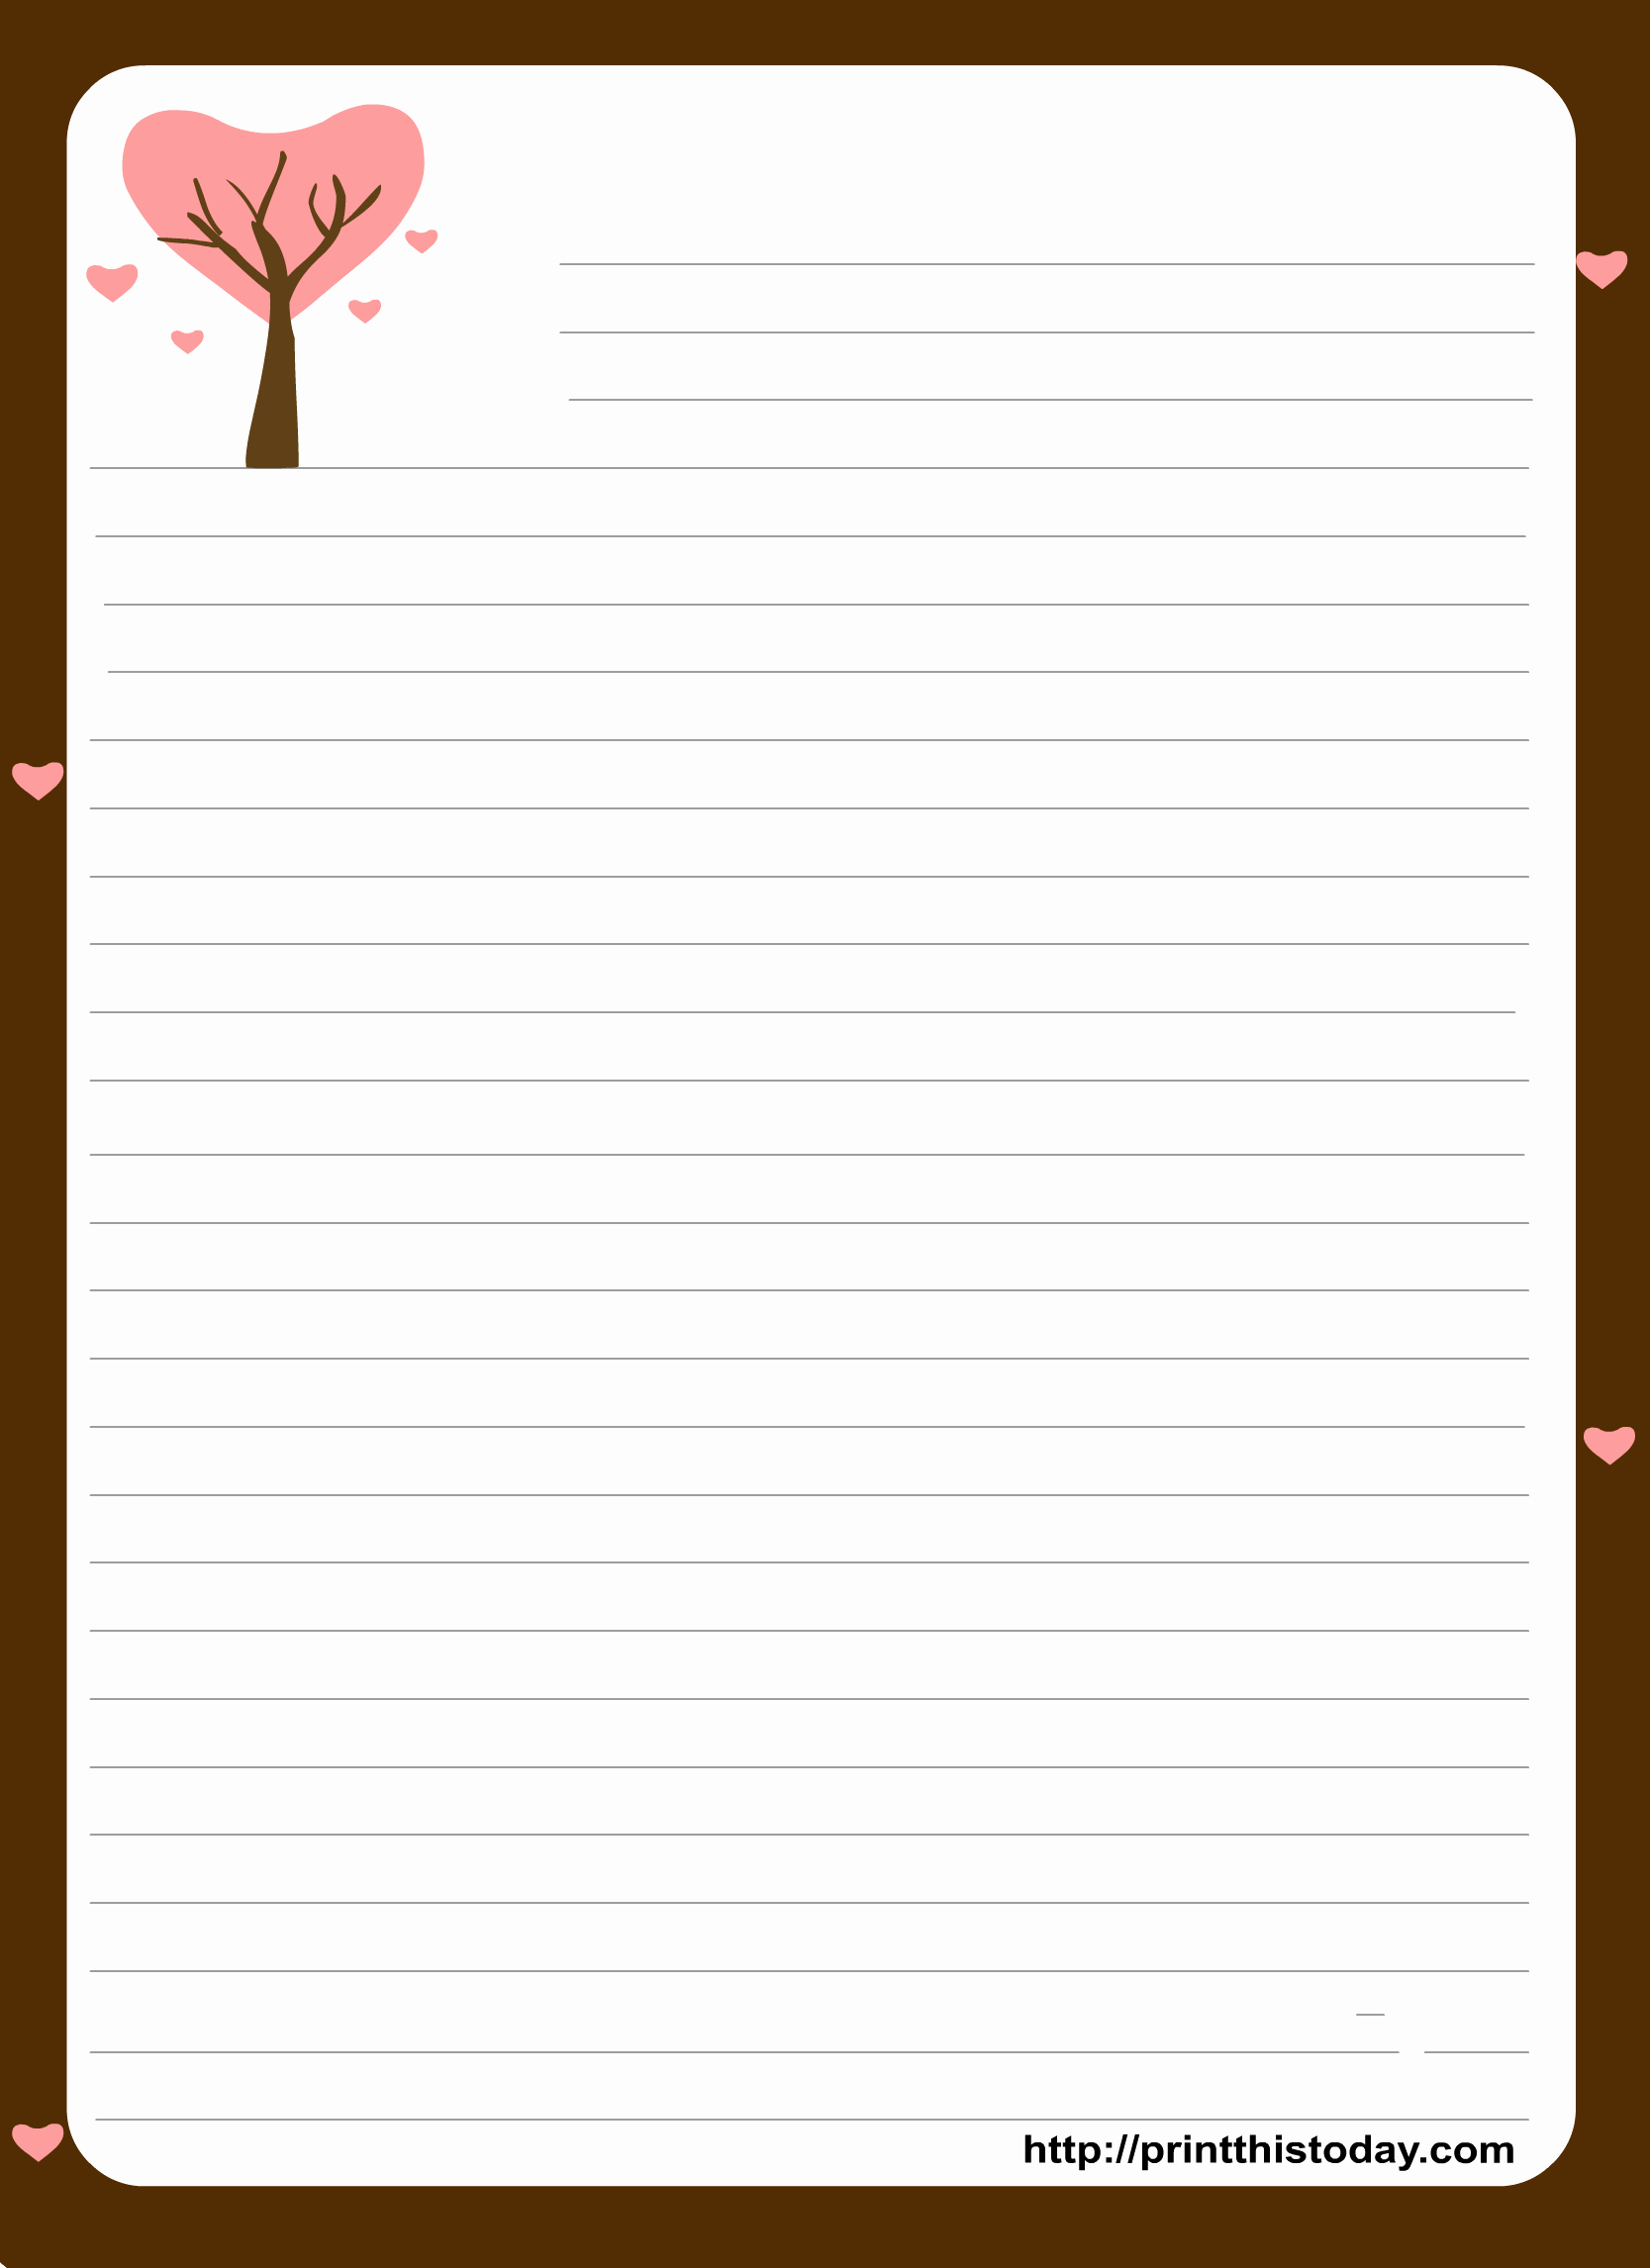 Letterhead And Stationary Free Printable Stationery Paper Free - Free Printable Stationery Writing Paper